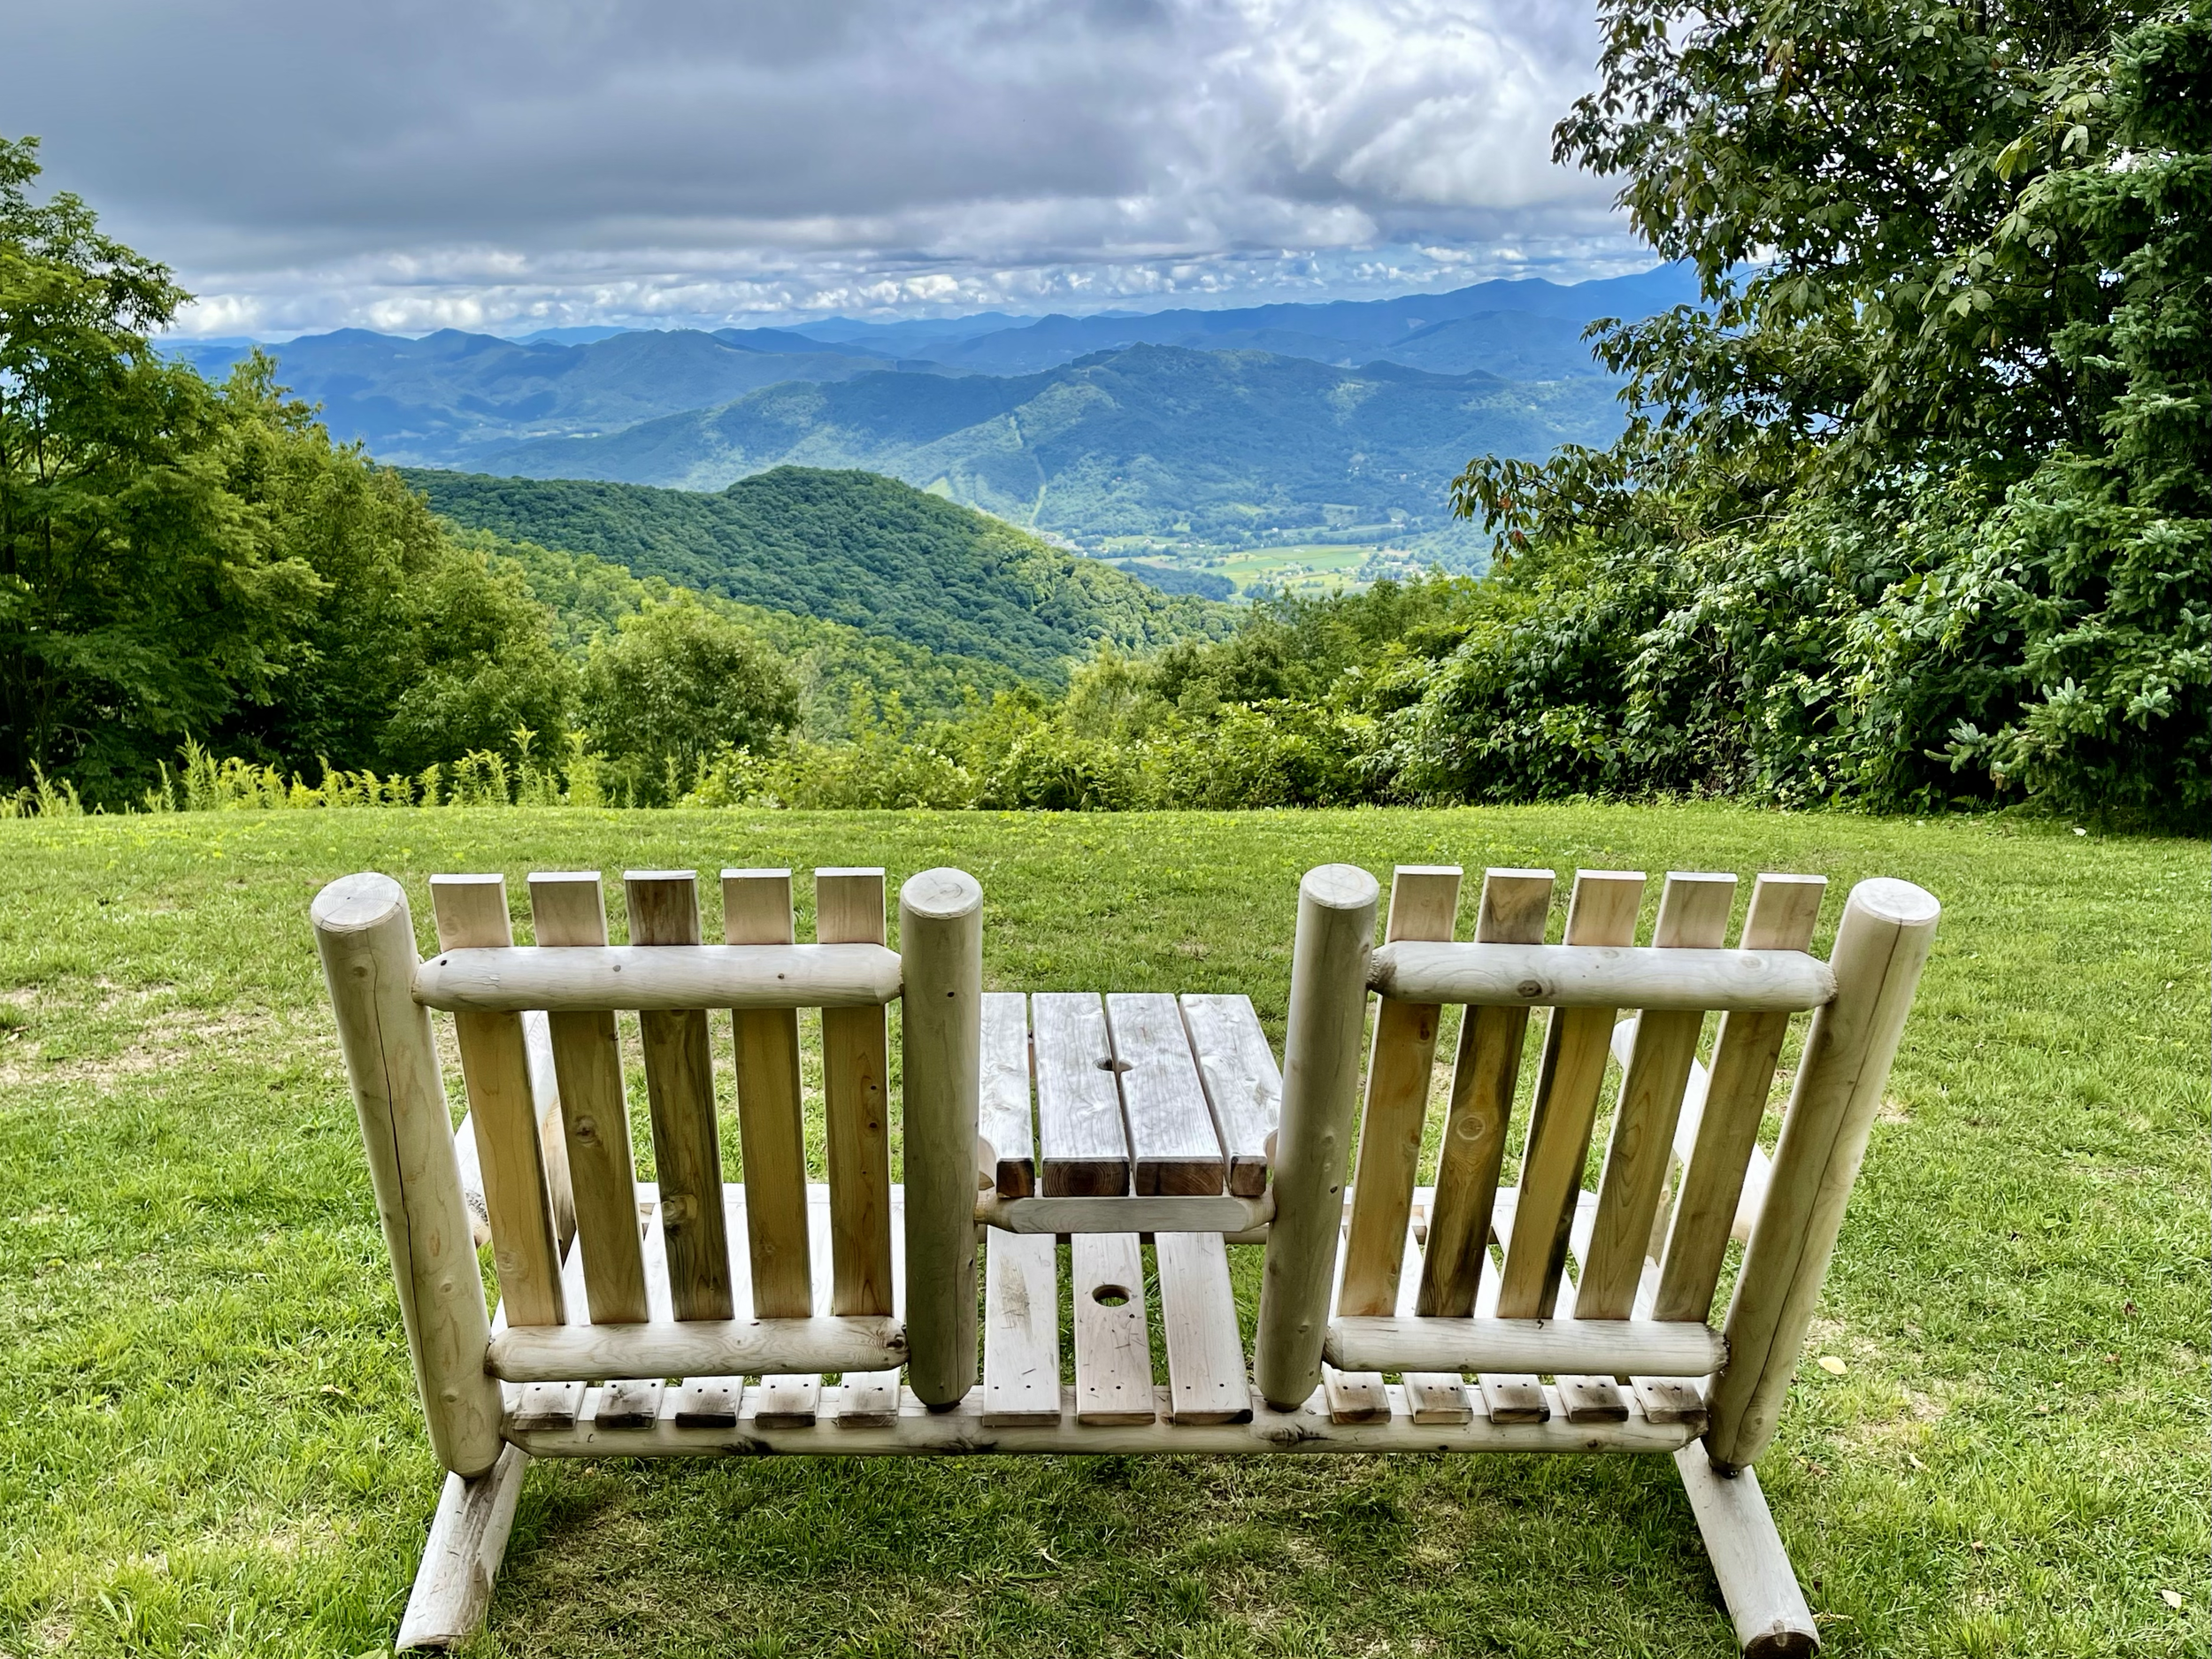 Views of the Great Smoky Mountains from The Swag